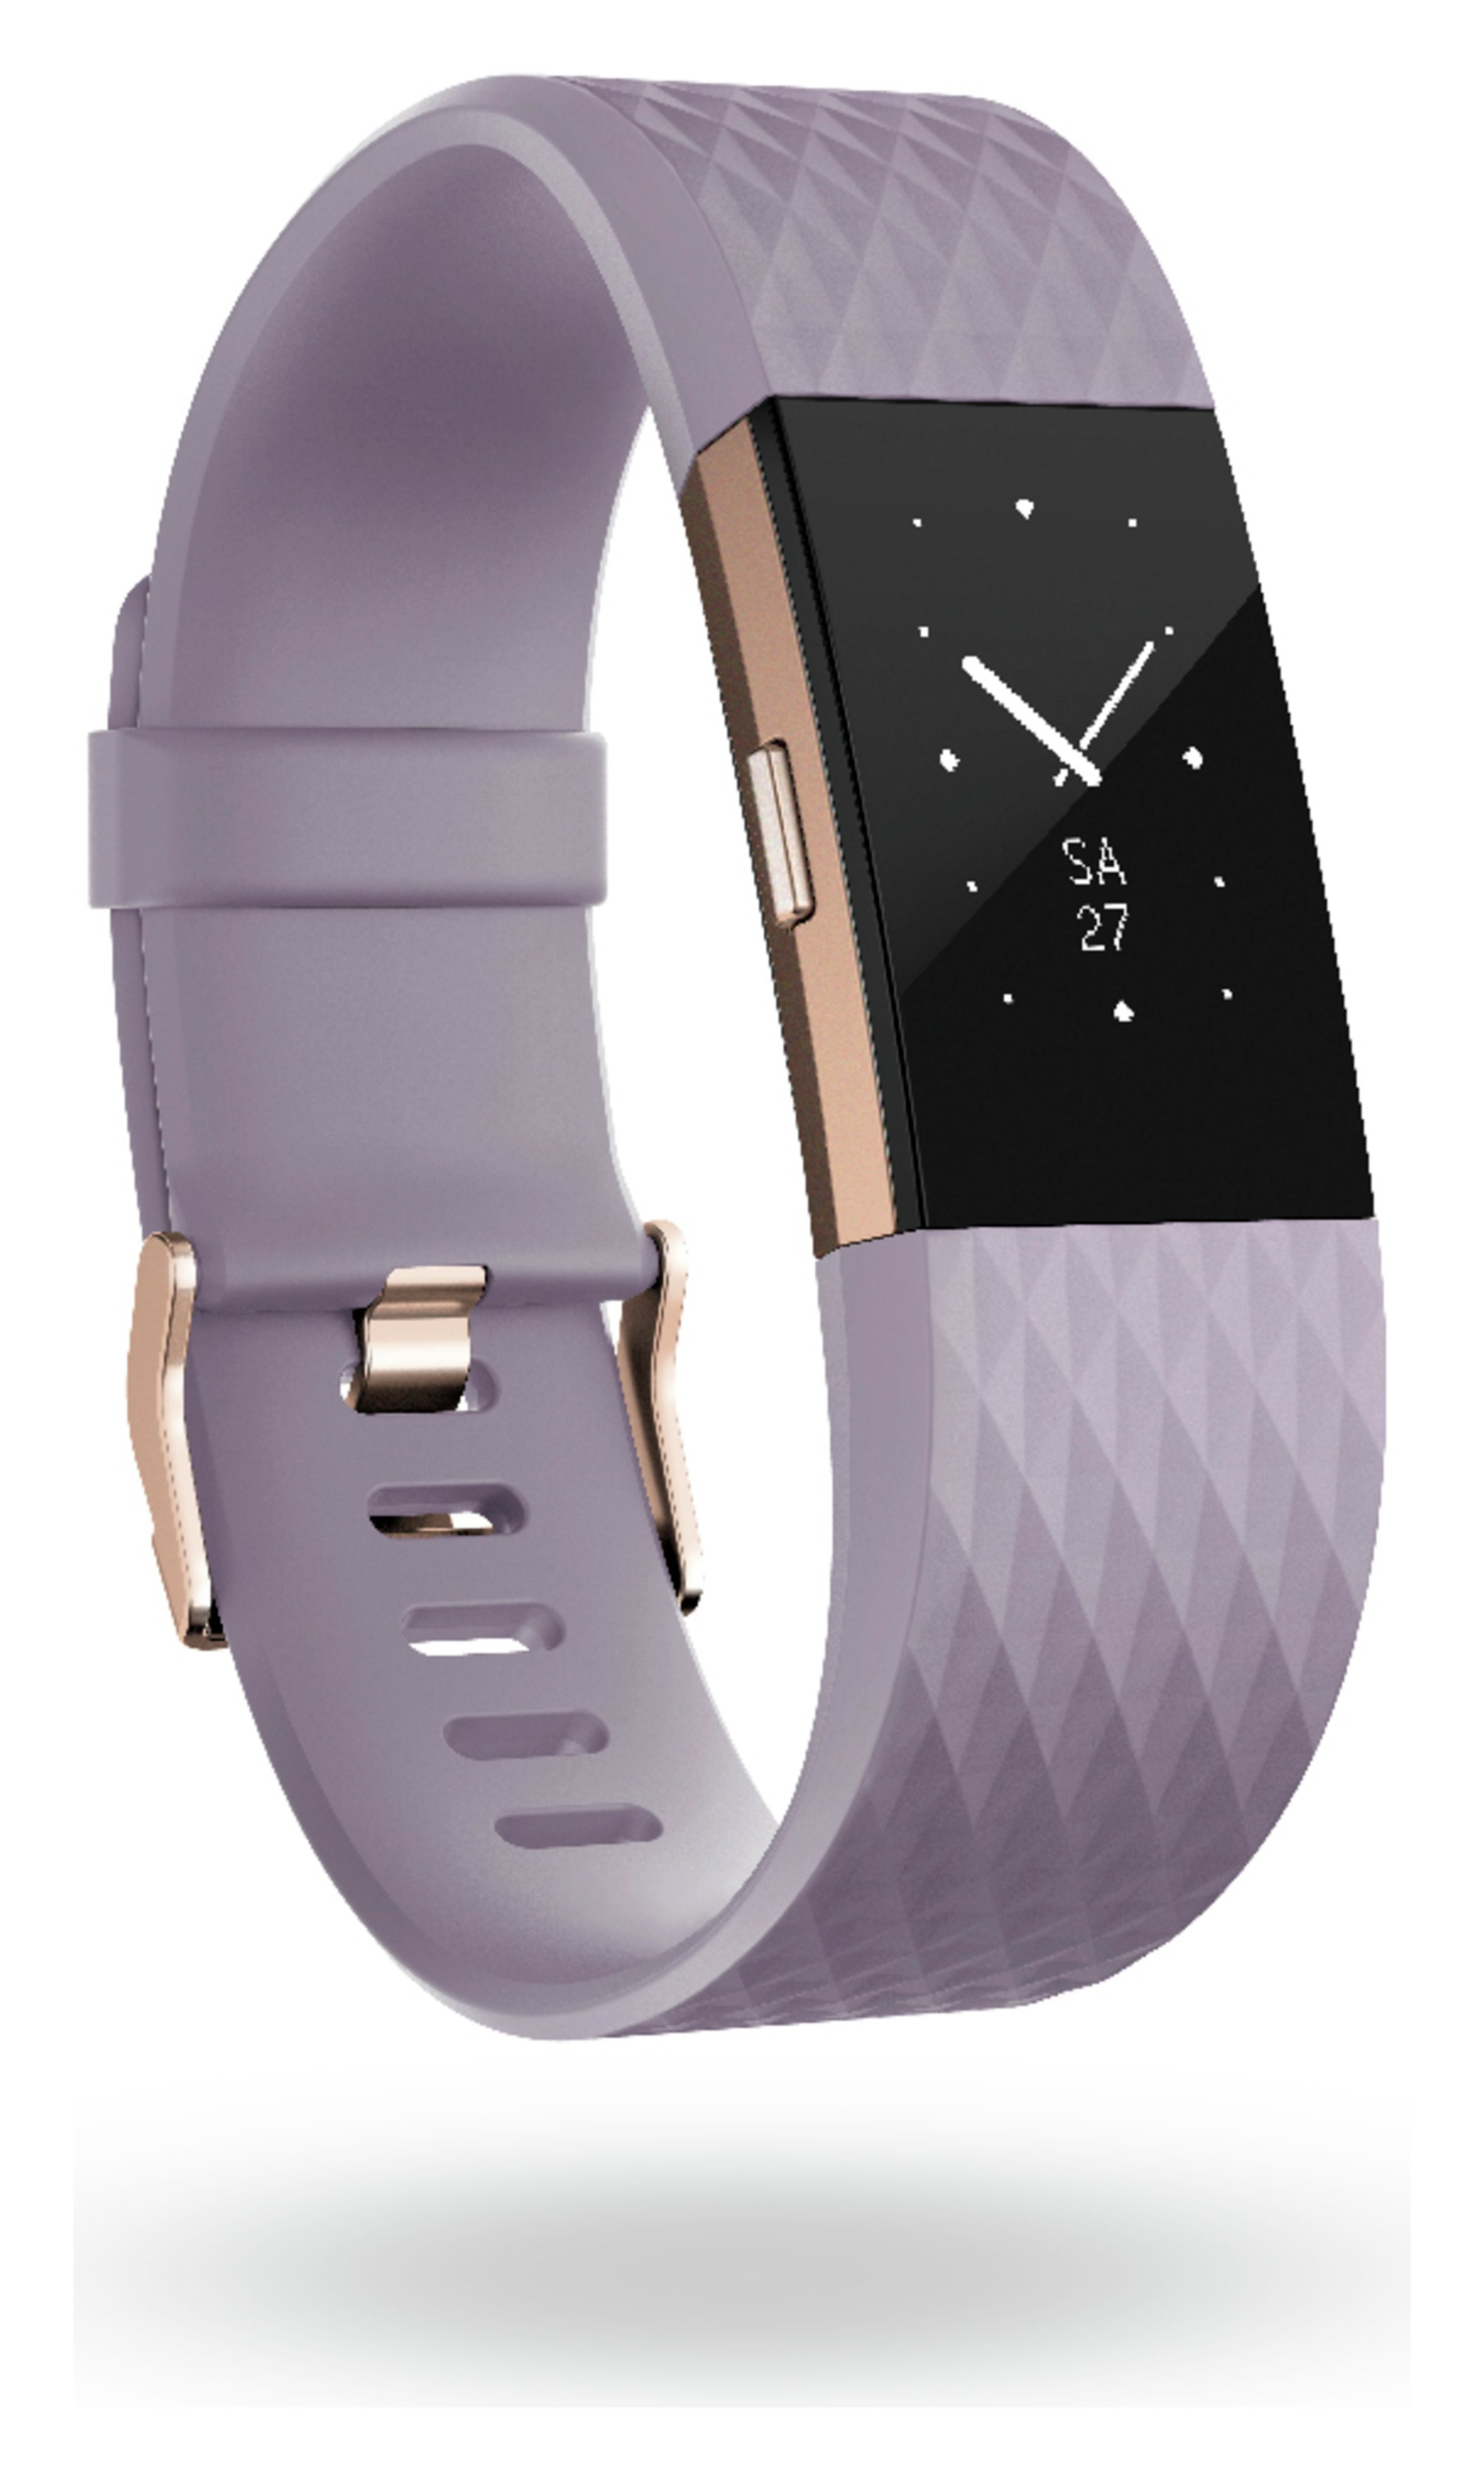 Fitbit Special Edition Charge 2 Band Rose Gold - Large